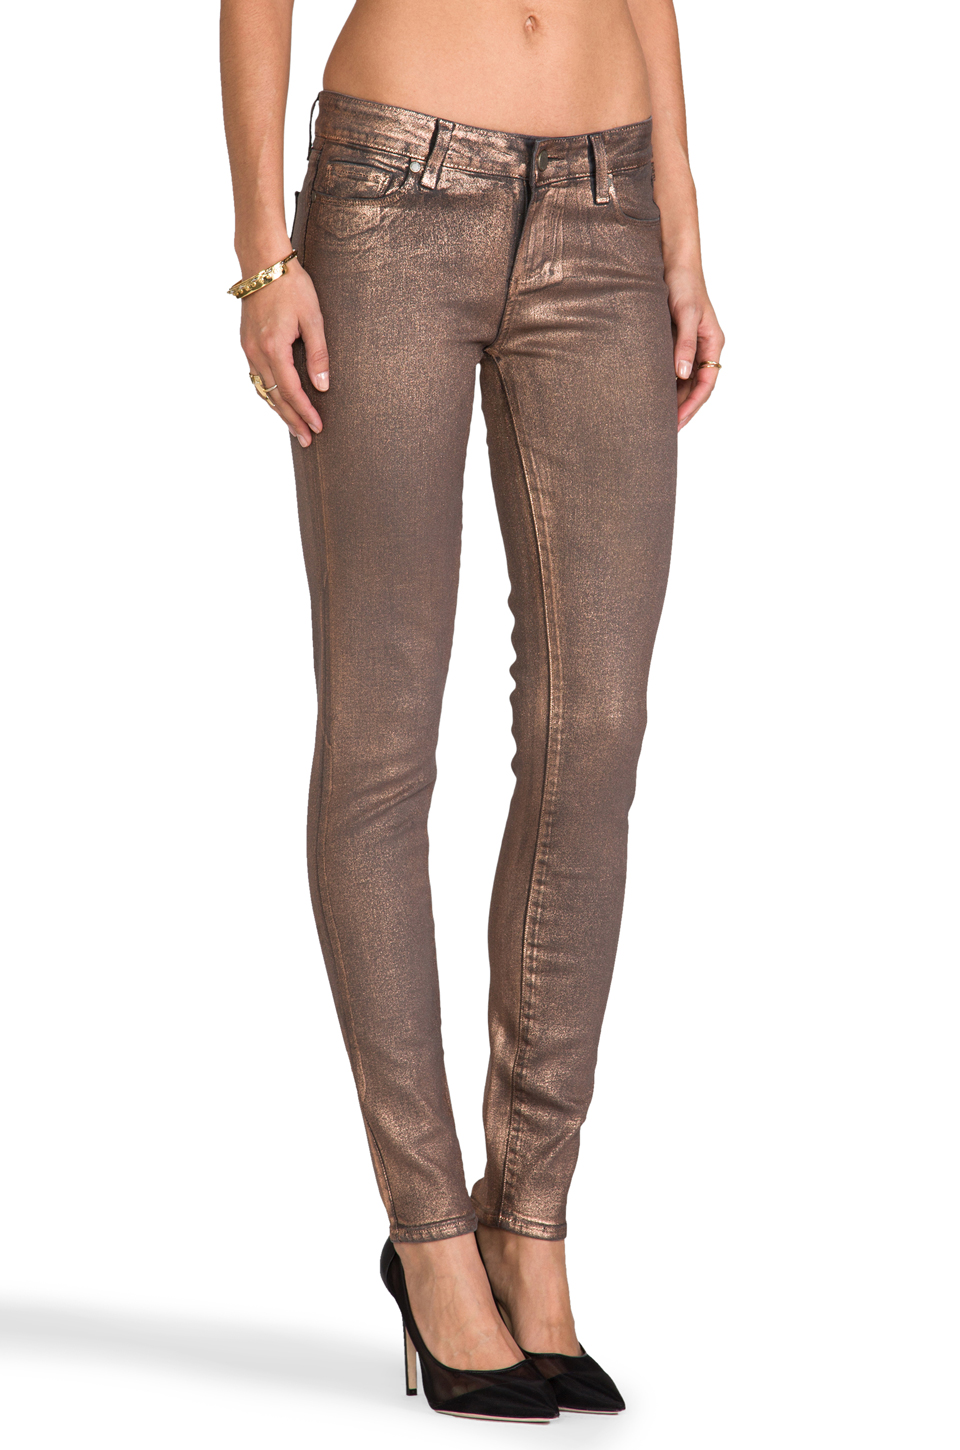 Paige Denim Verdugo Ultra Skinny in Rose Gold | REVOLVE